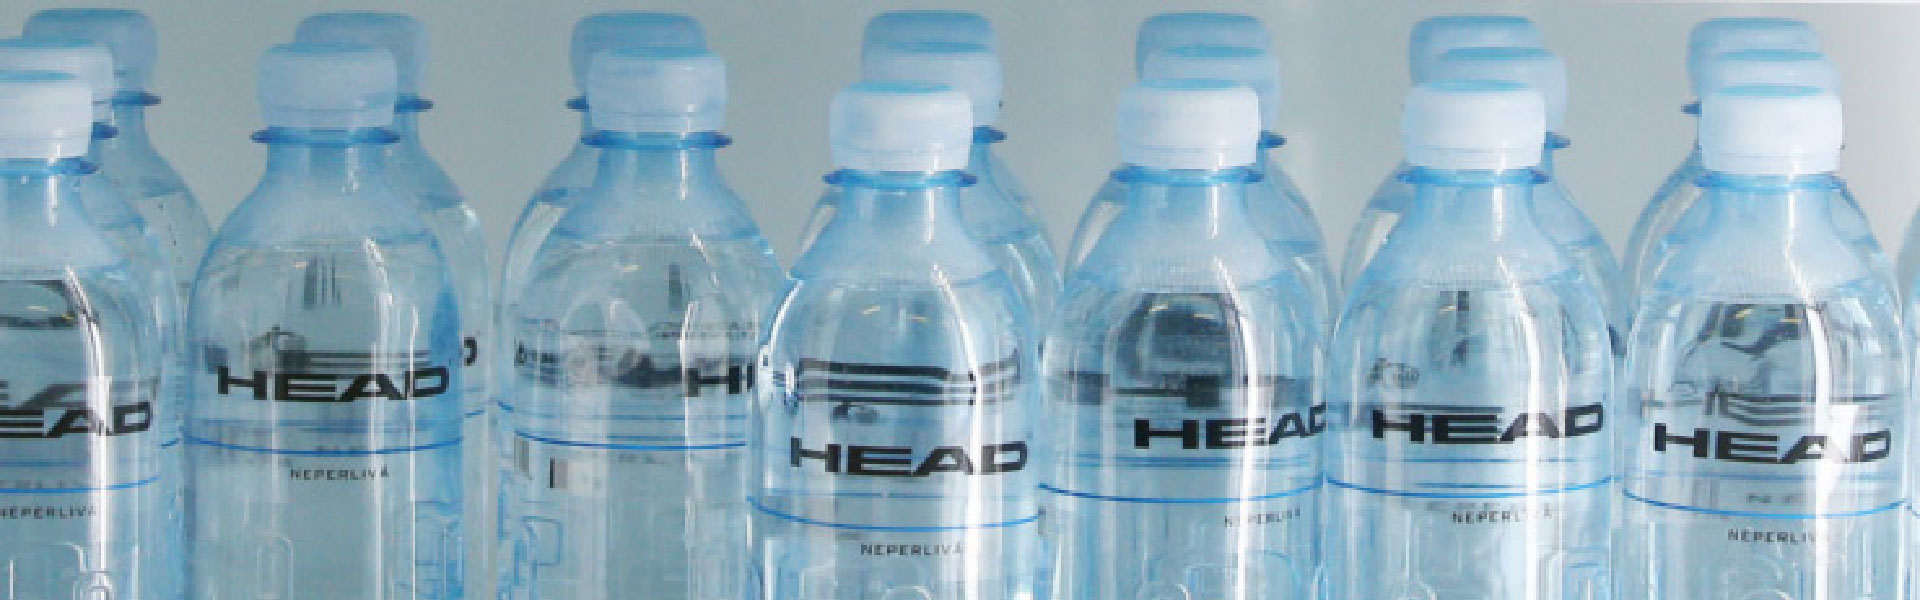 HEAD Drinks water bottles